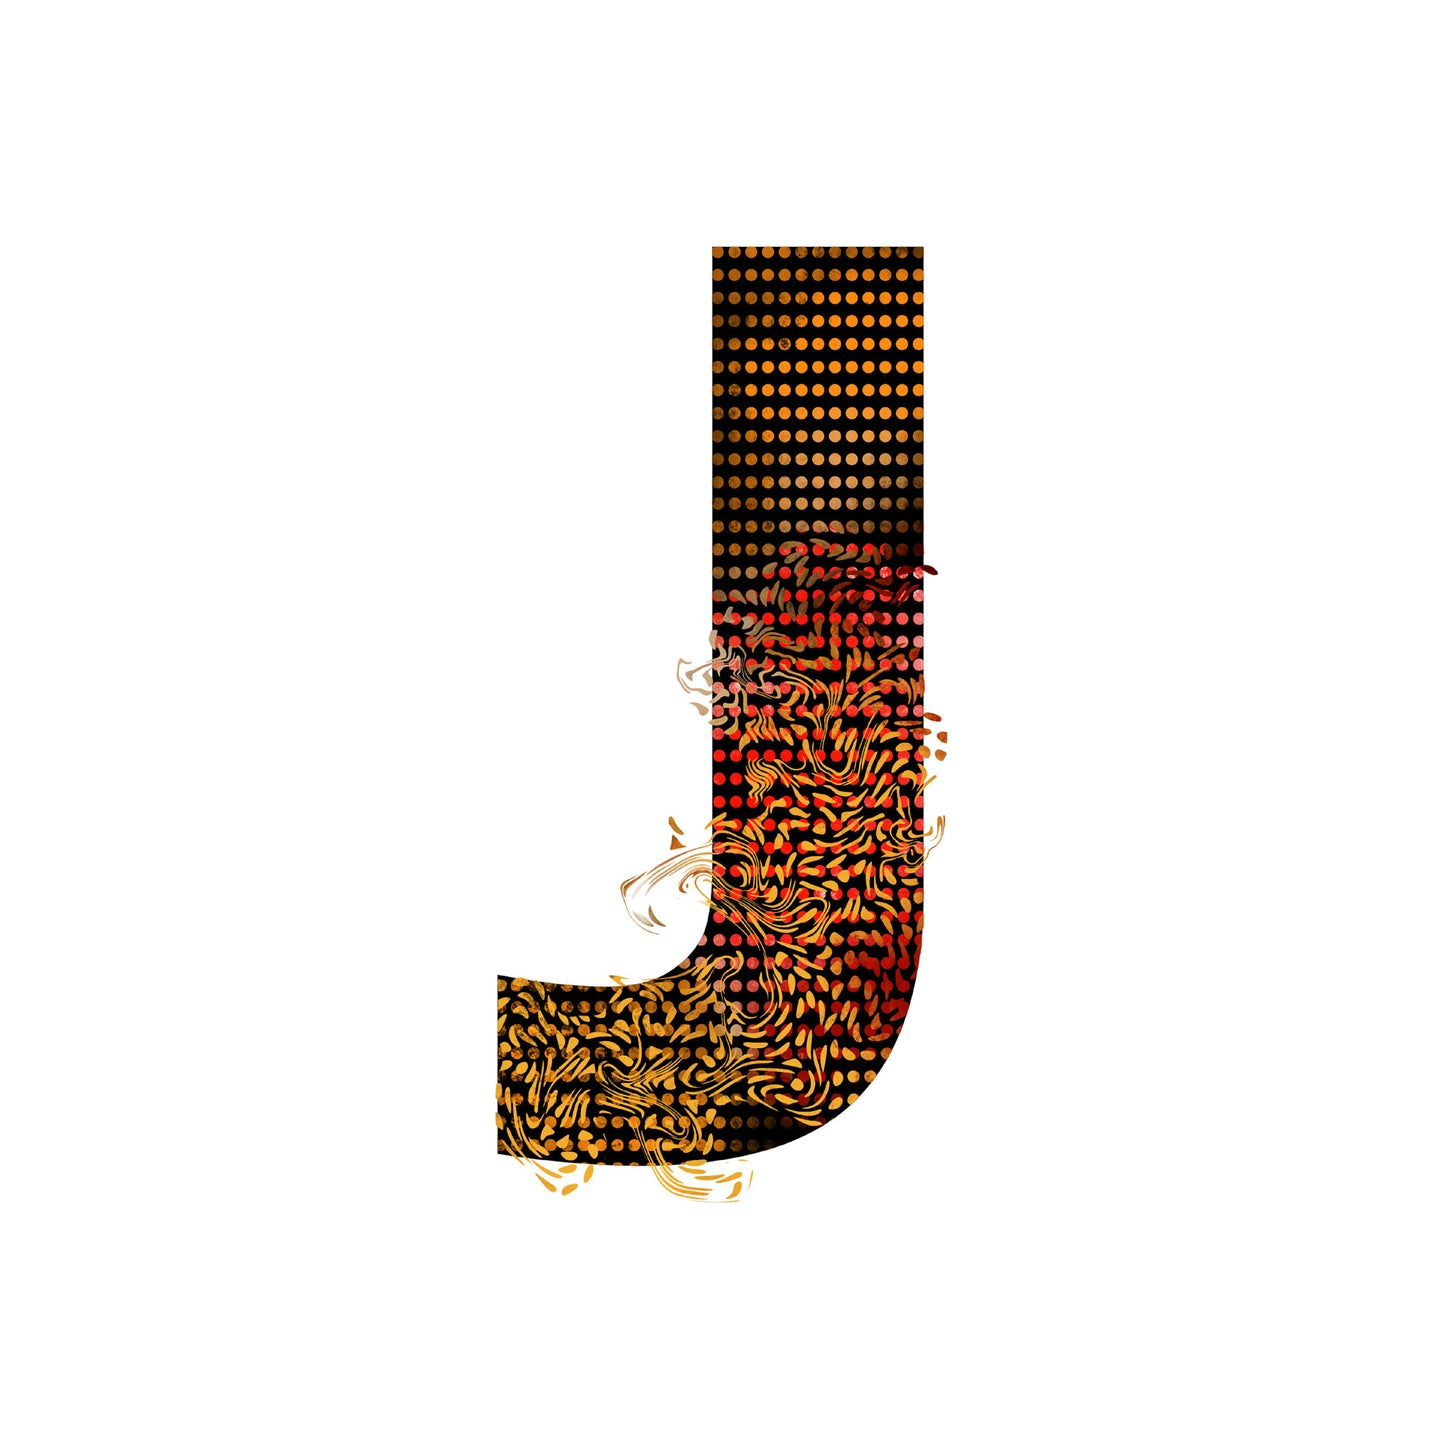 'WILD J' From the Wild Alphabet.